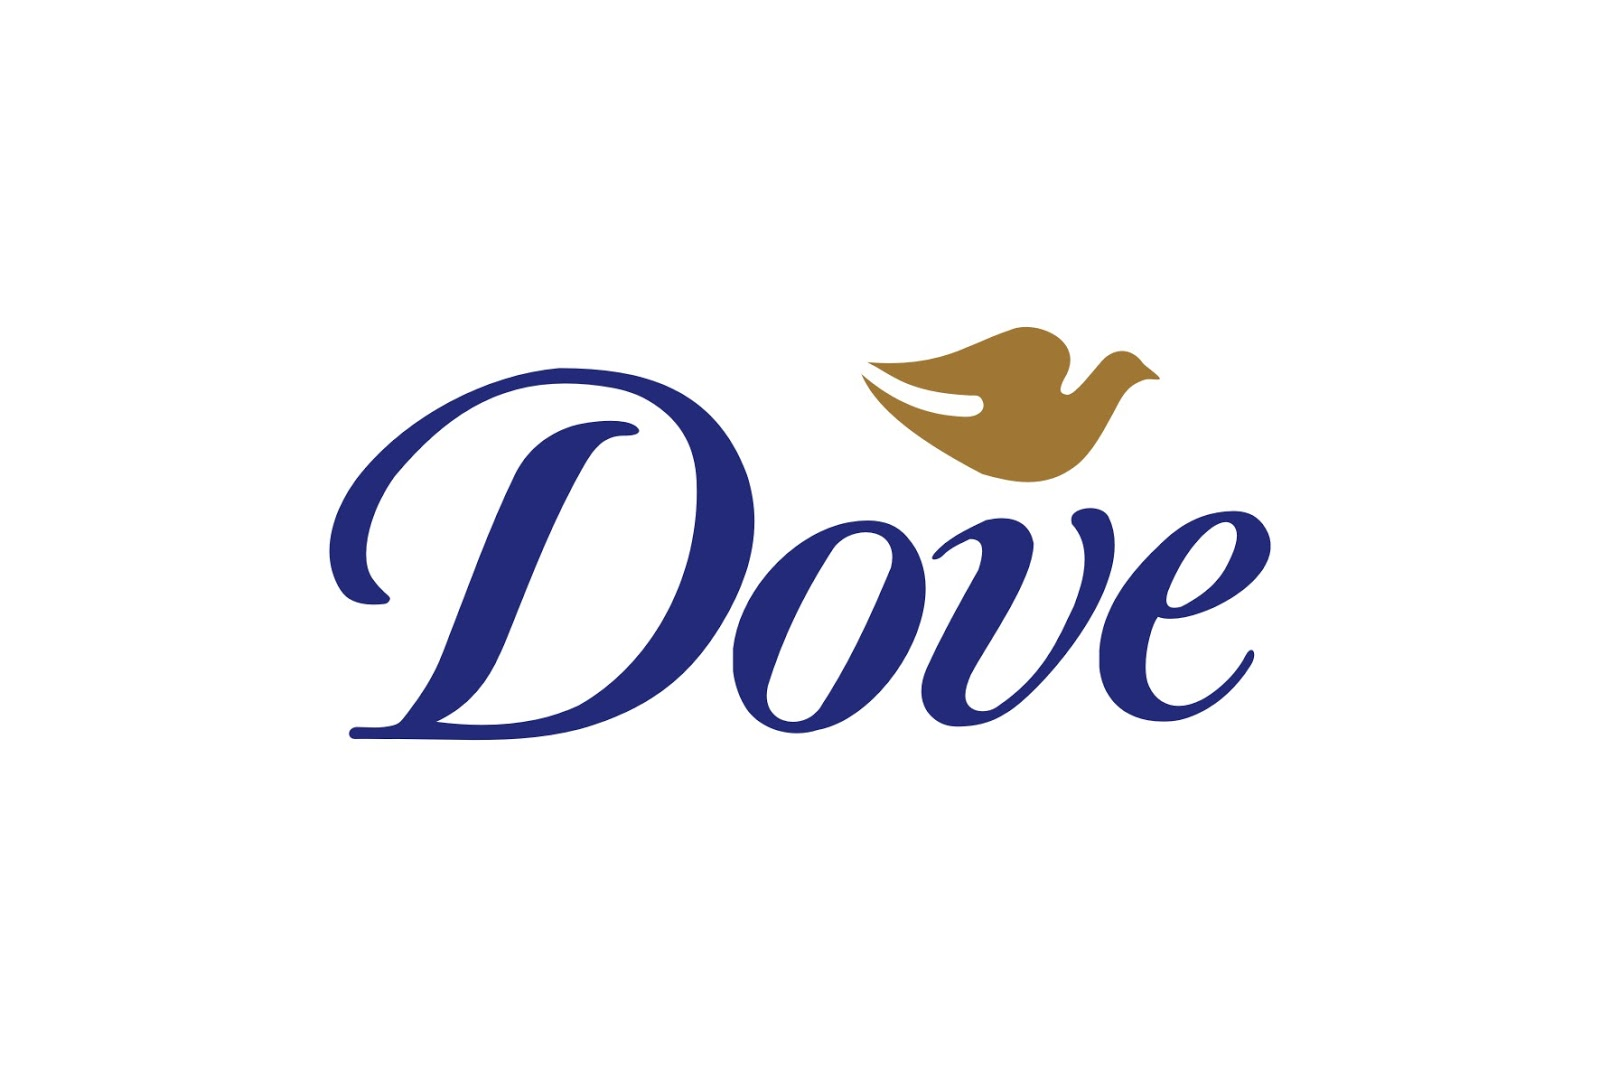 Dove soap slogan - photo#54